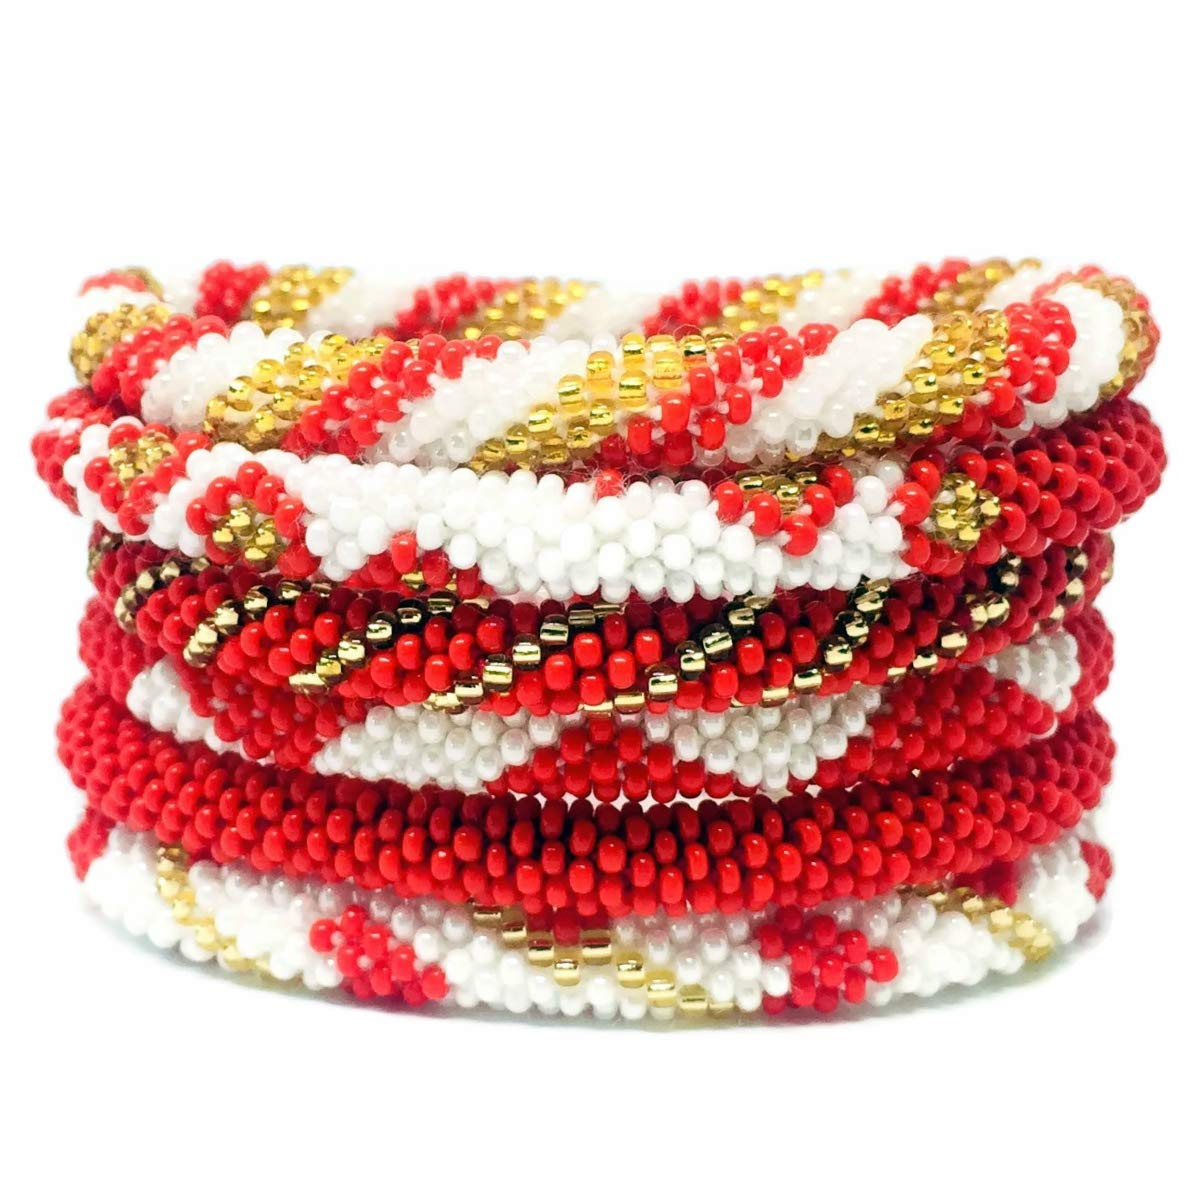 Kissed Karma Nepalese Roll on Hand Beaded Glass Seed Bead Bracelet. 6 Pcs Set. Premium Red Color Mix. (Red)